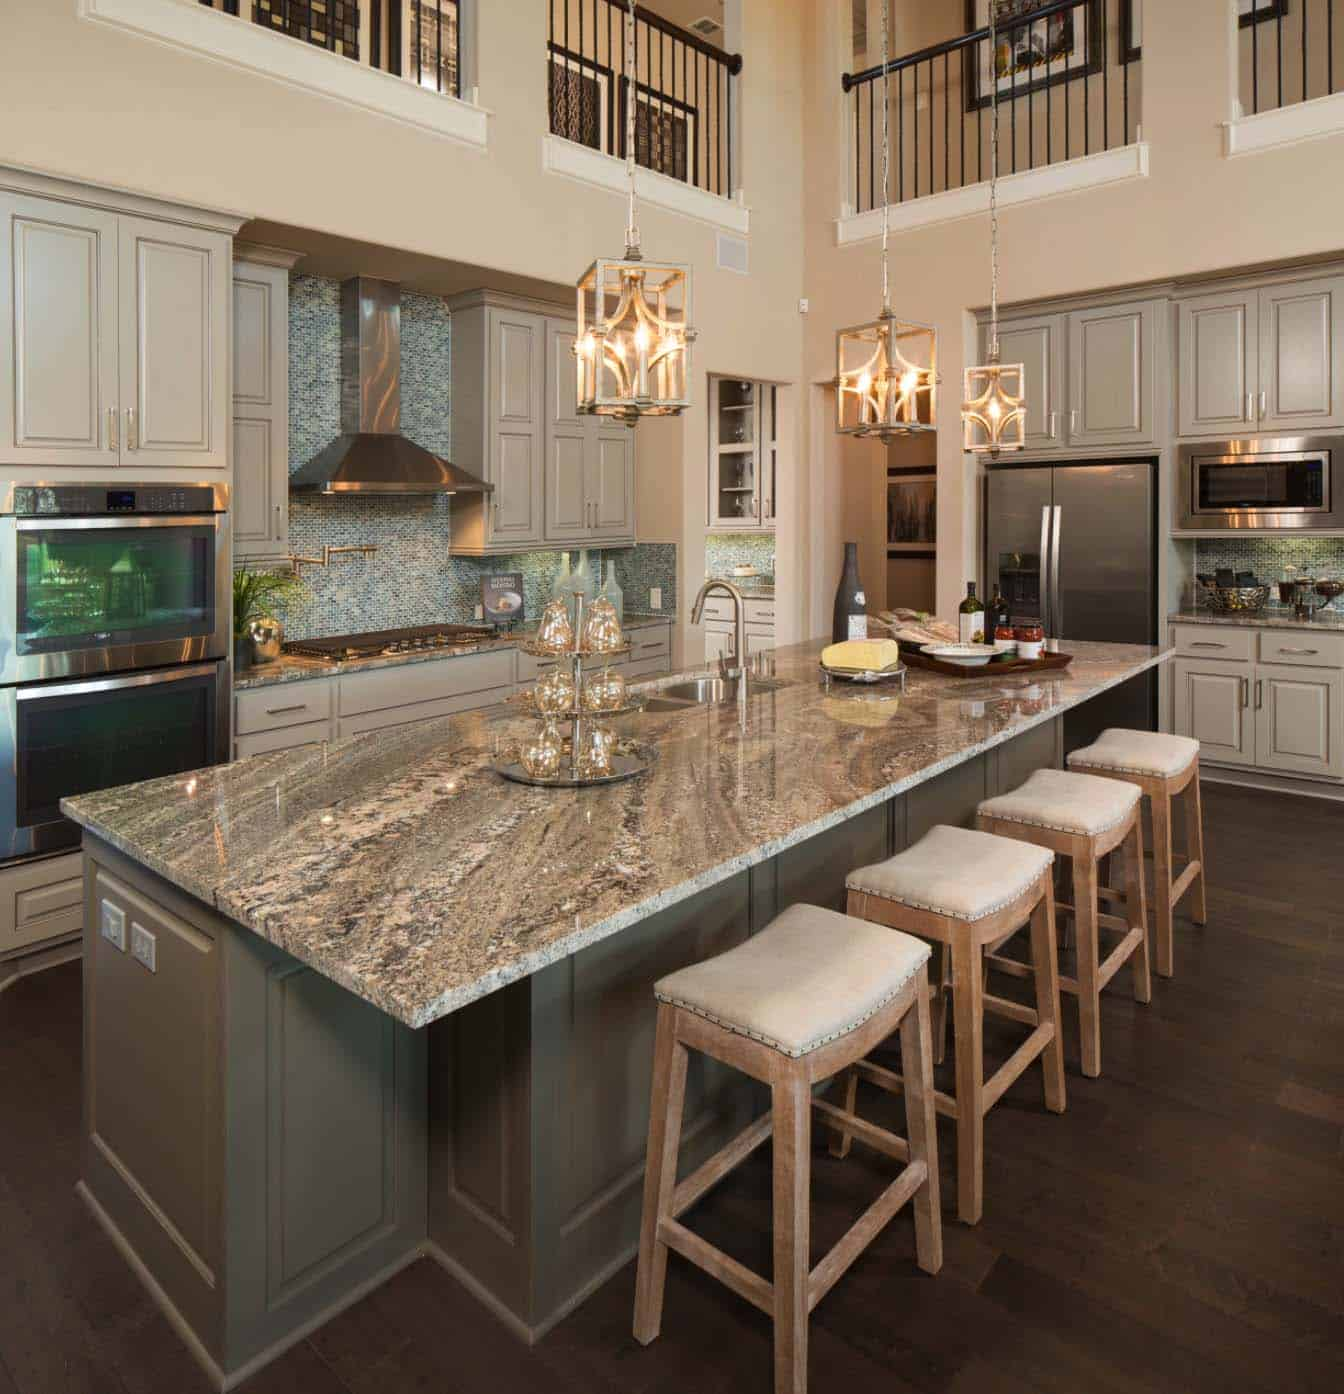 Different Countertop Surfaces 30 43 Brilliant Kitchen Island Ideas That Make A Statement